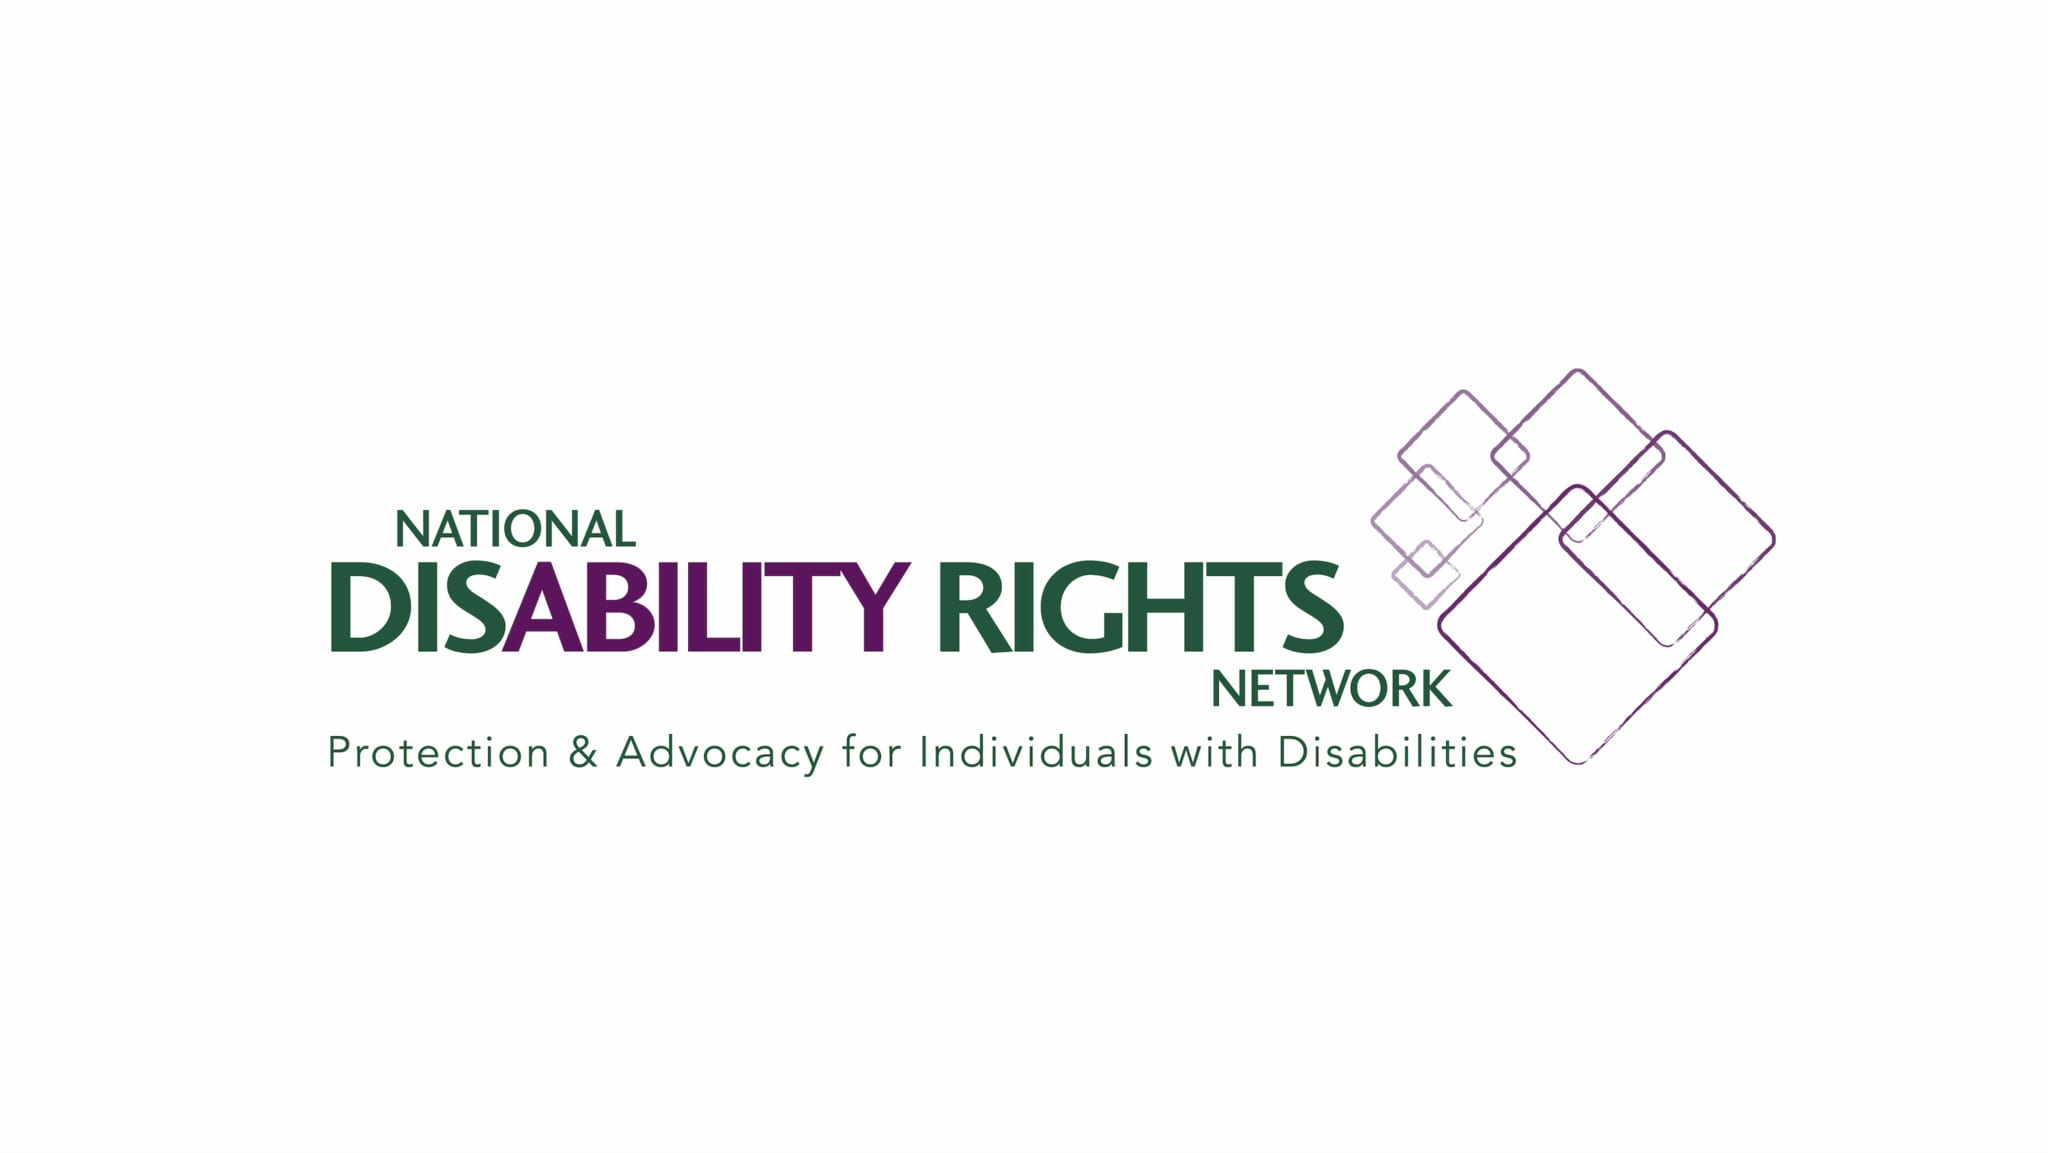 protection and advocacy for people with disabilities